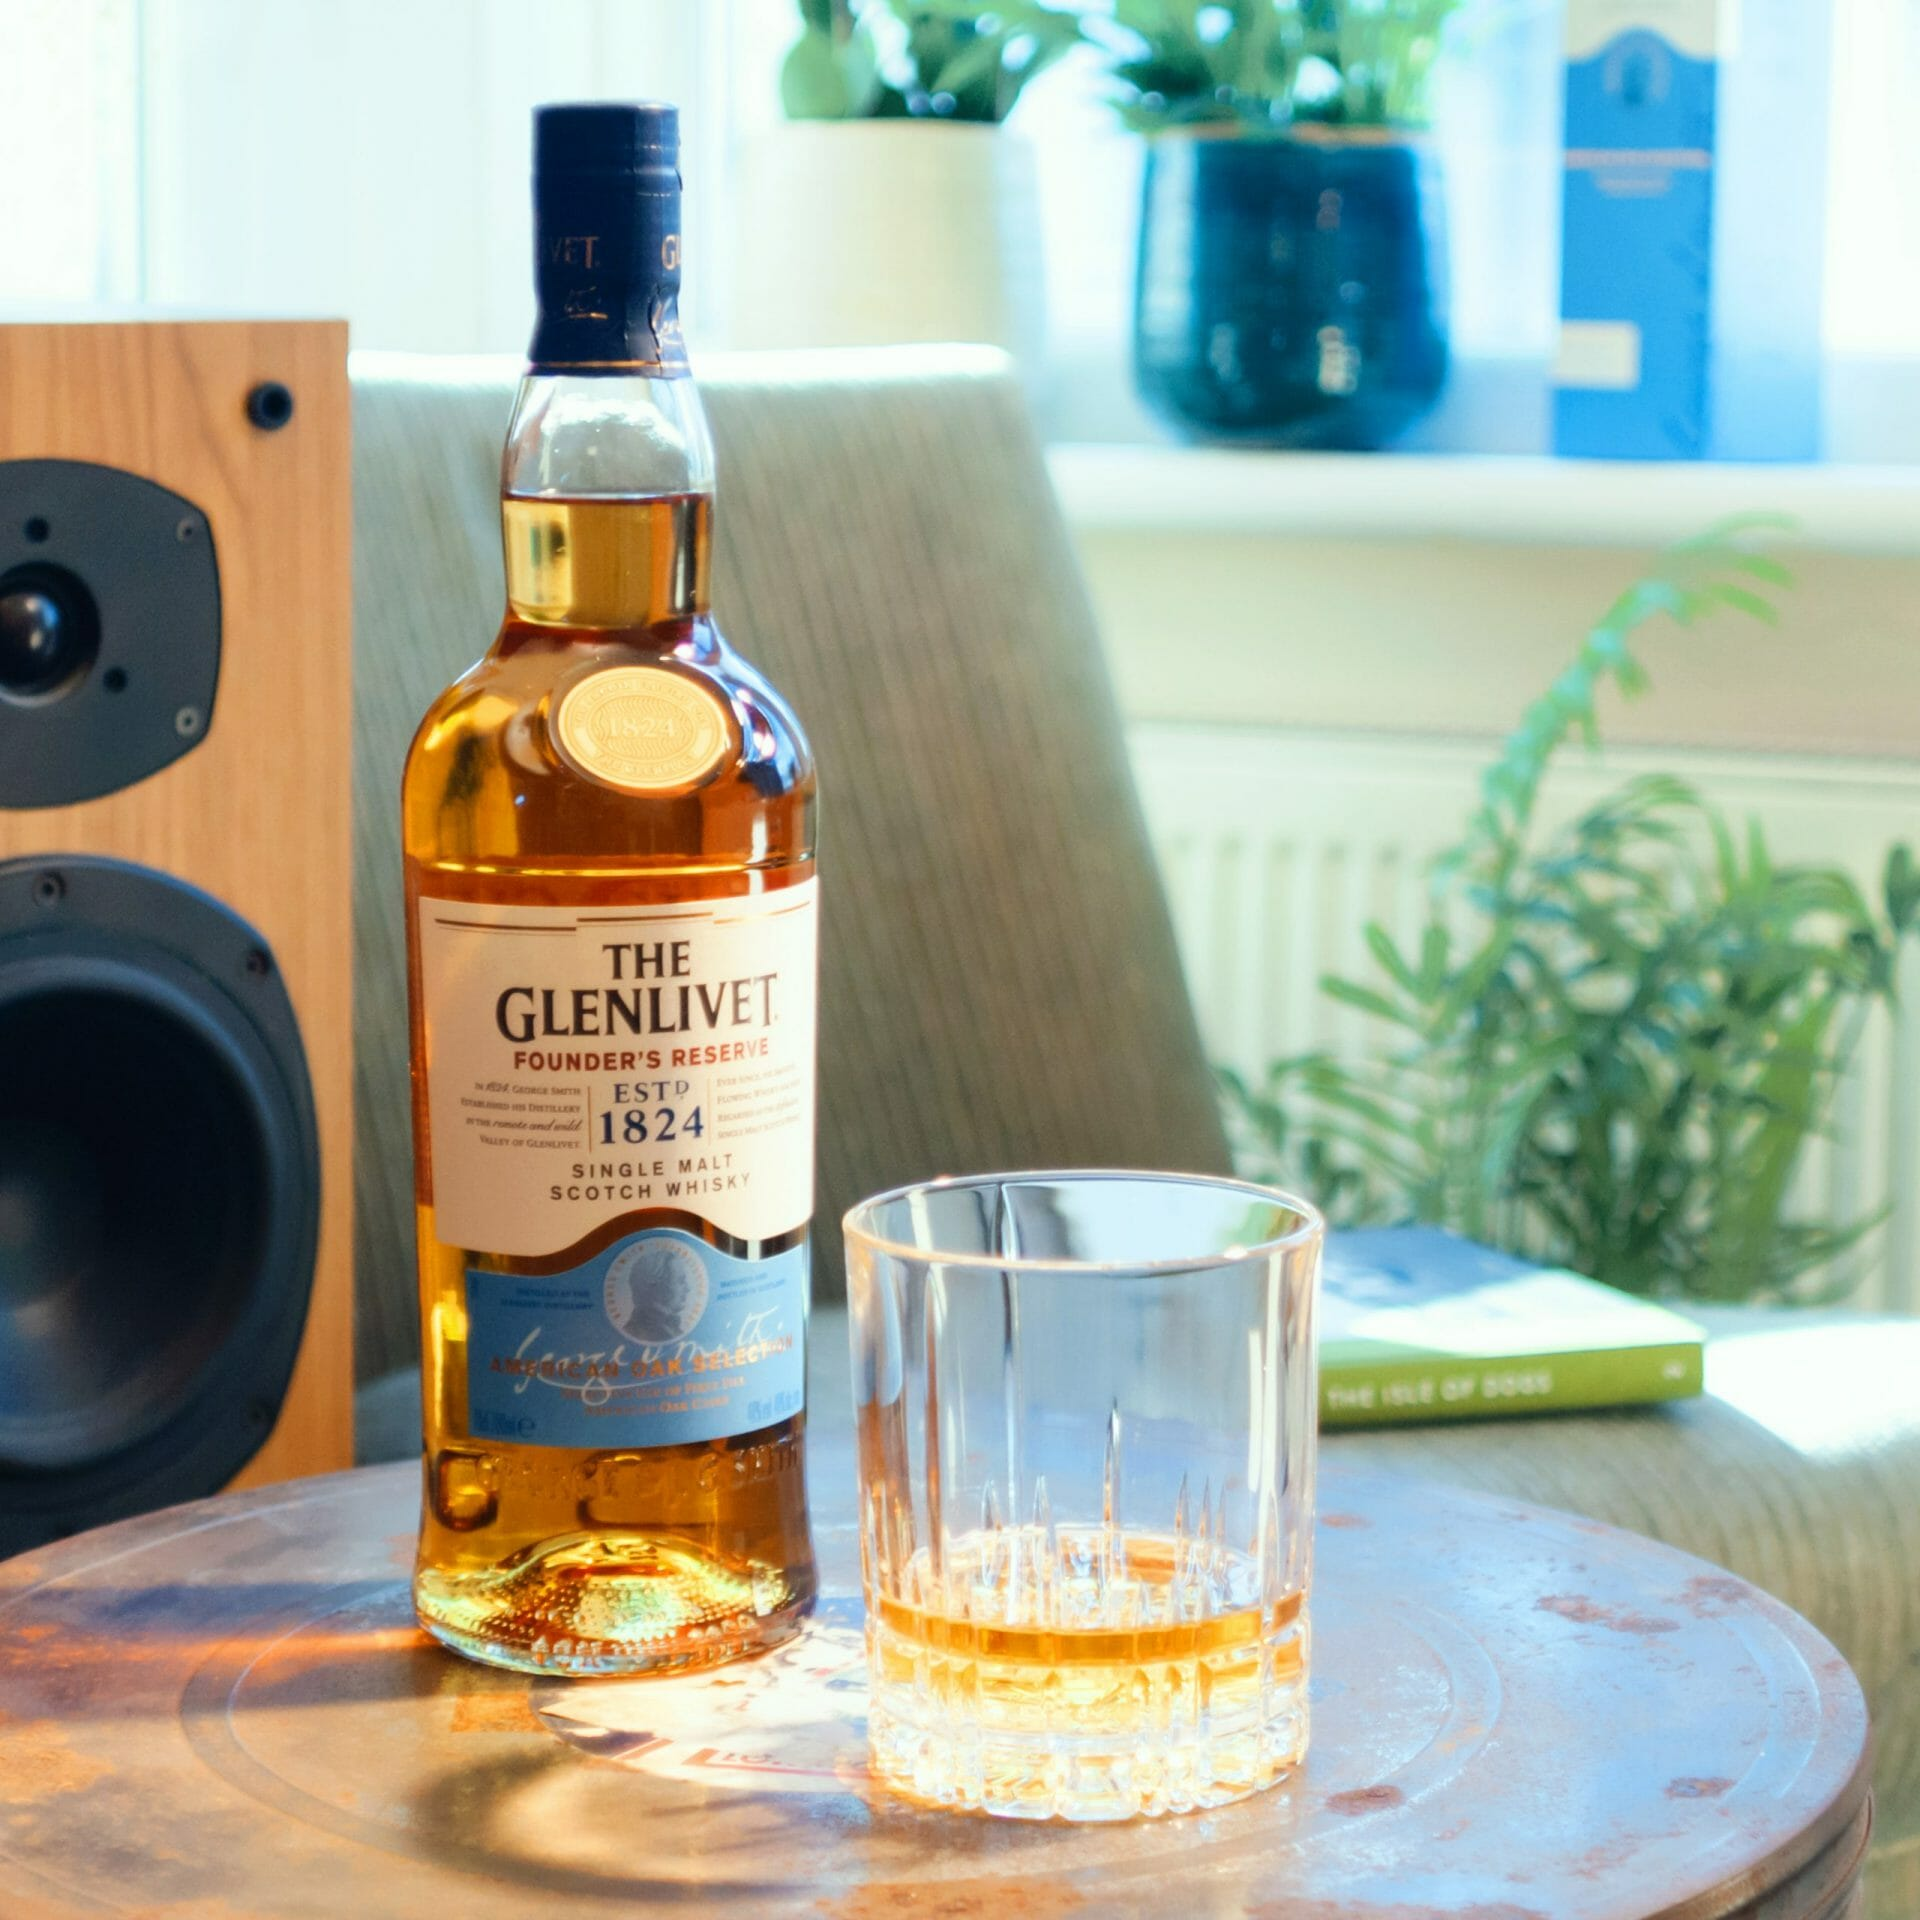 The Glenlivet Spirit Founder's Reserve Whisky Does Not Believe in Age Statements